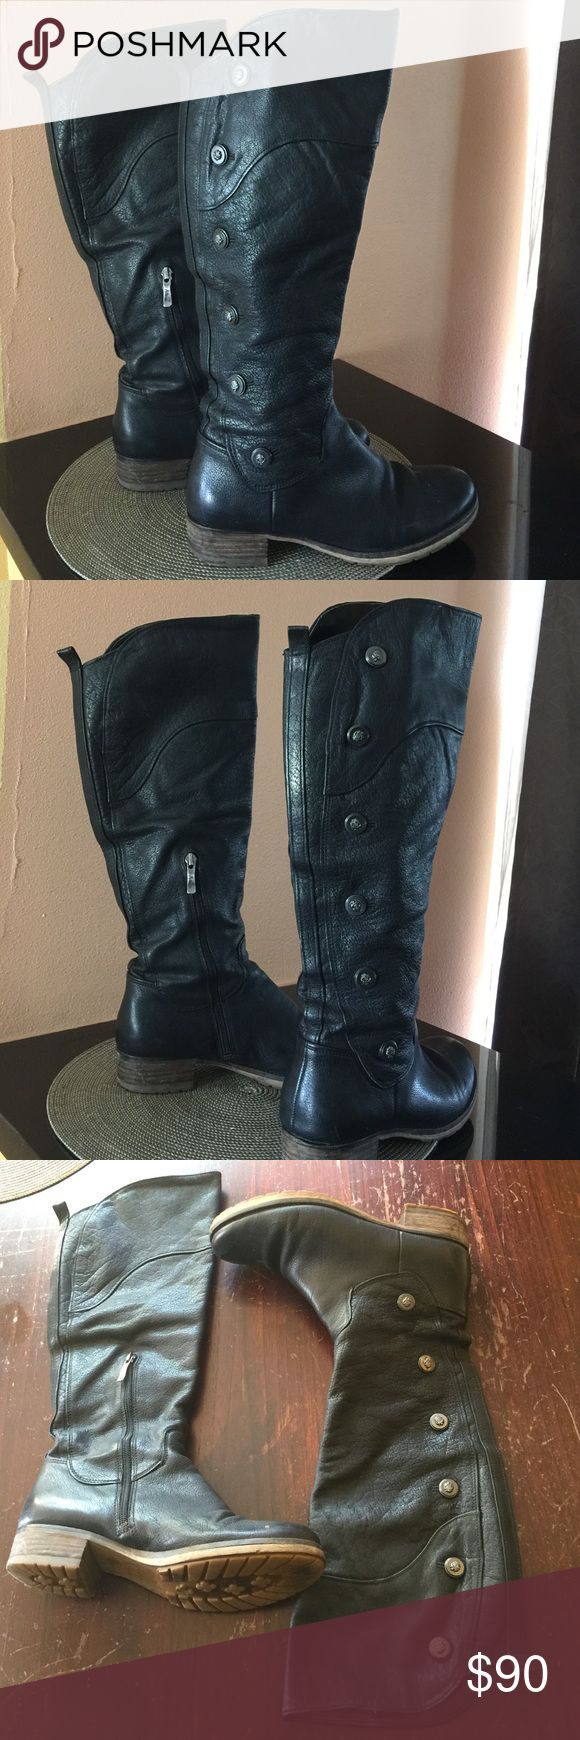 Guess by Marciano long boots. There's a zipper on the side for ease of getting in and out of the boots. There are gorgeous buttons that go up the outside of the boot. Slightly used. Guess by Marciano Shoes Winter & Rain Boots